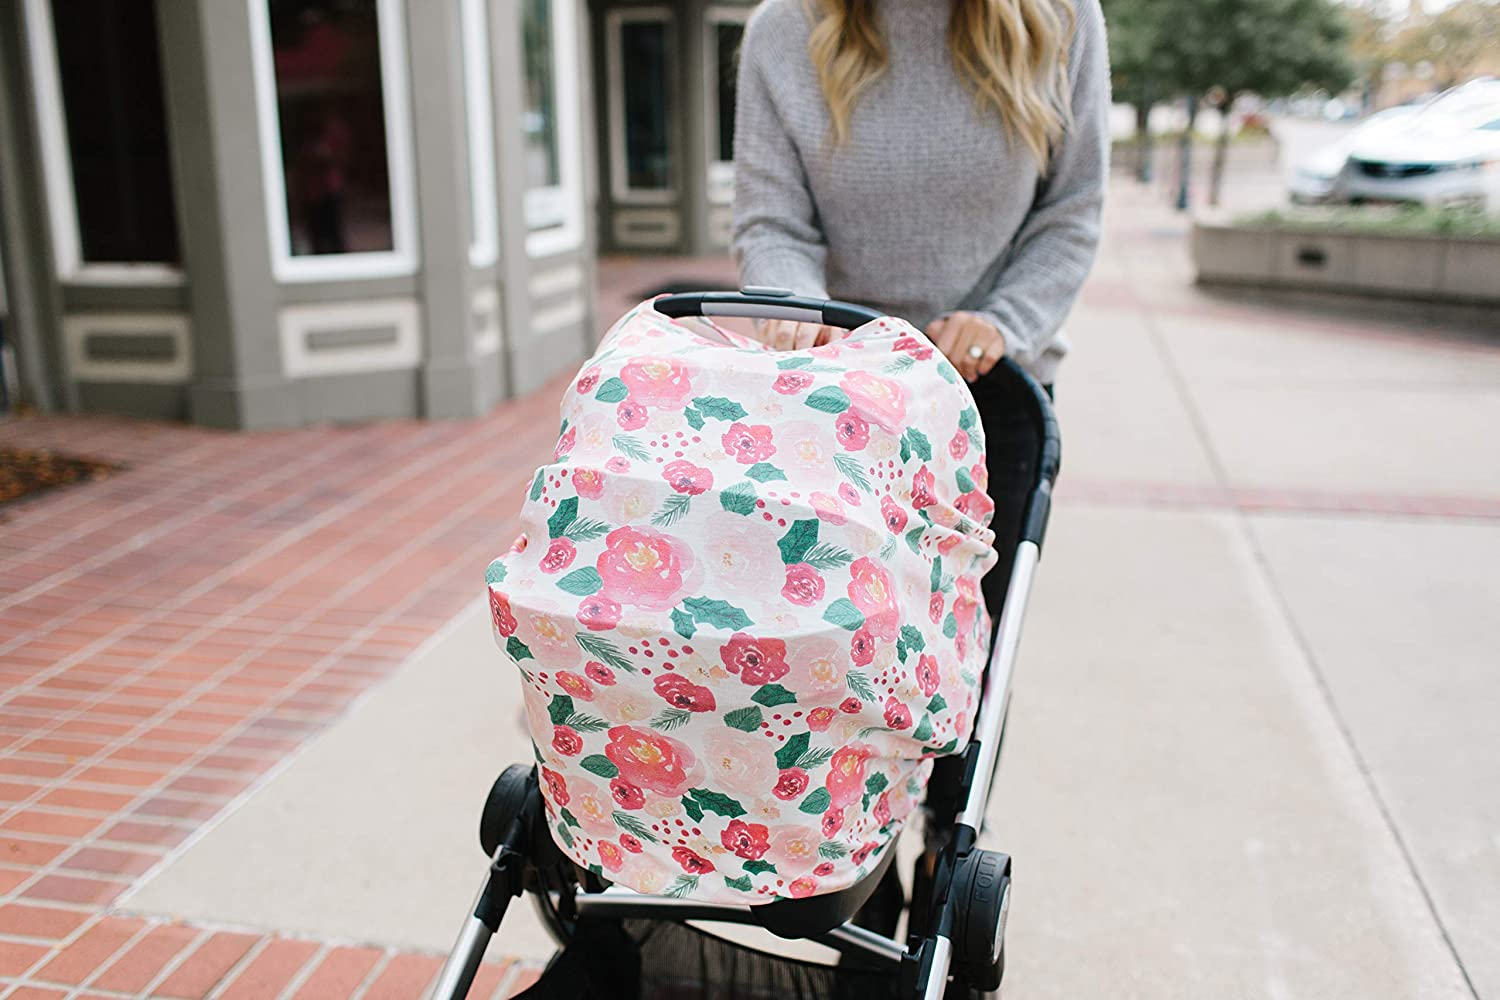 Stupendous Baby Car Seat Cover Canopy And Nursing Cover Multi Use Machost Co Dining Chair Design Ideas Machostcouk